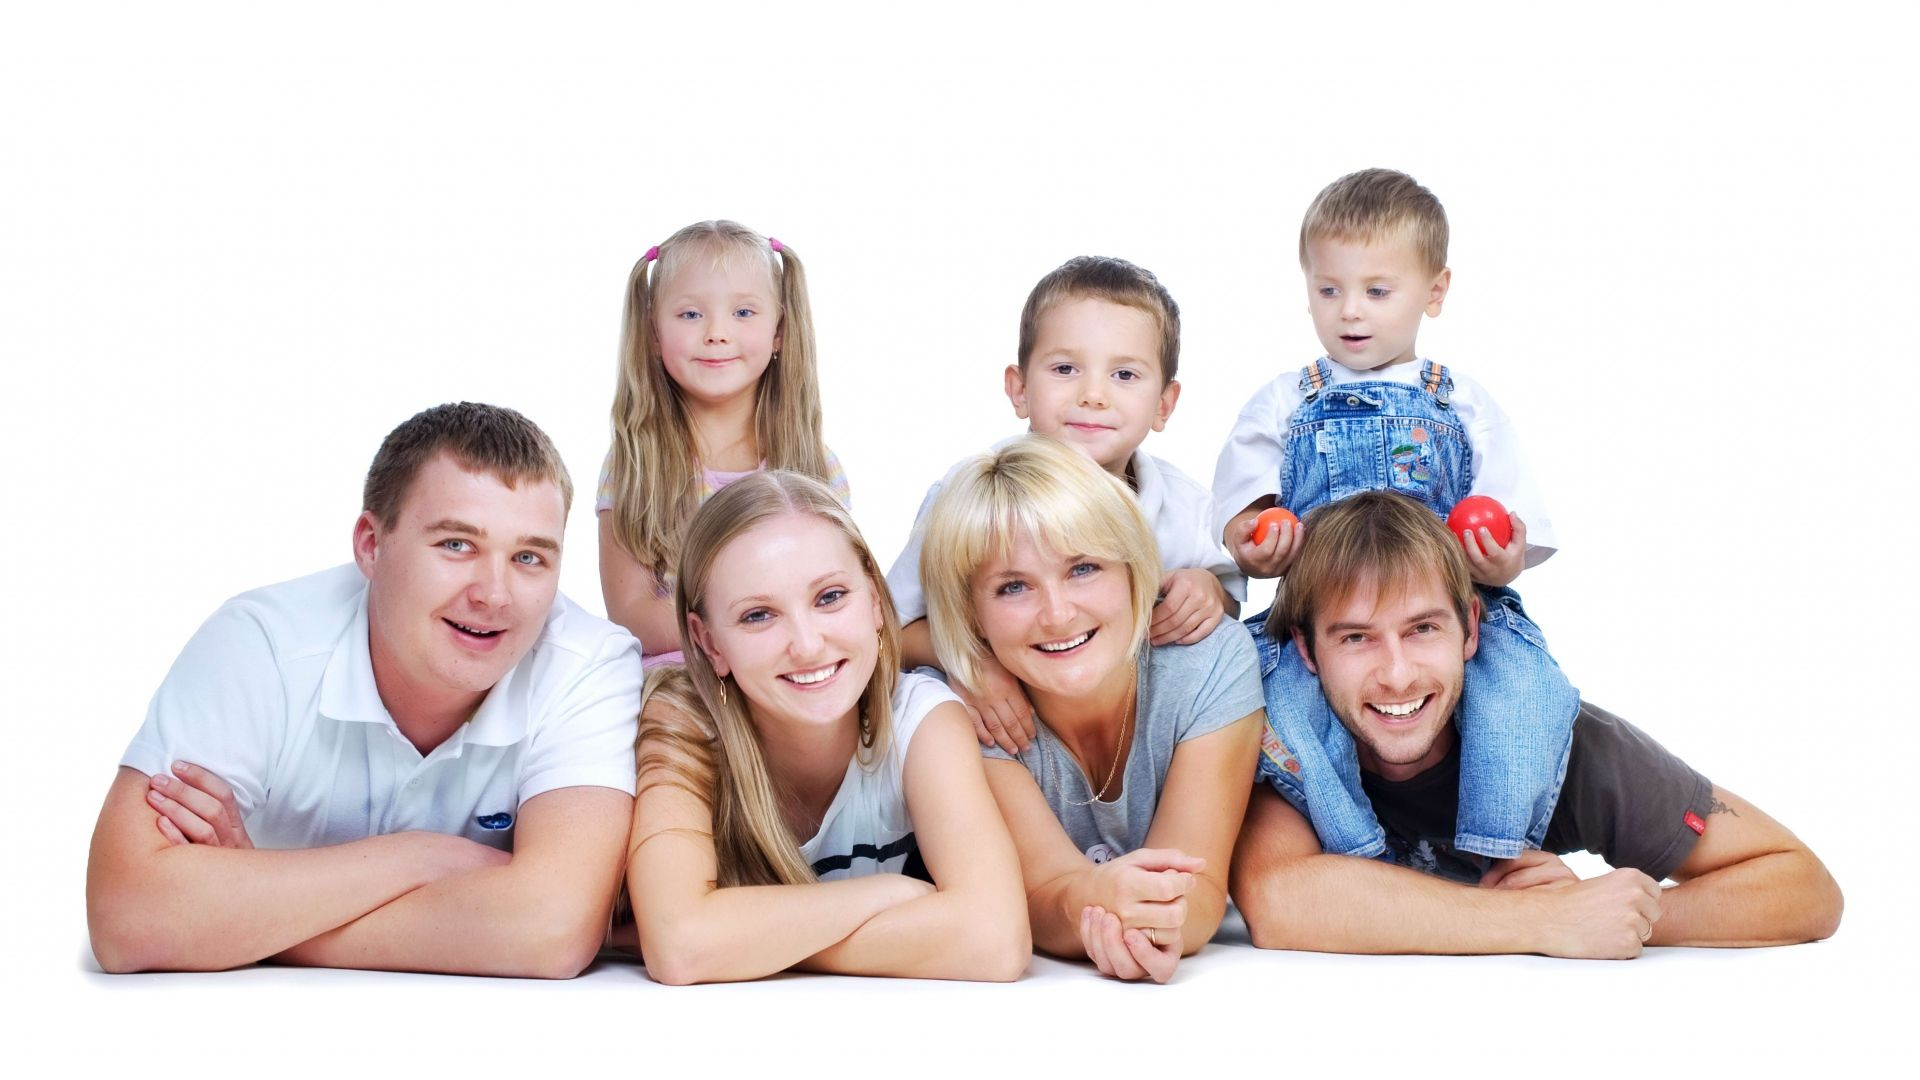 Family Wallpapers Live Family Wallpapers QAZ Family Backgrounds ...